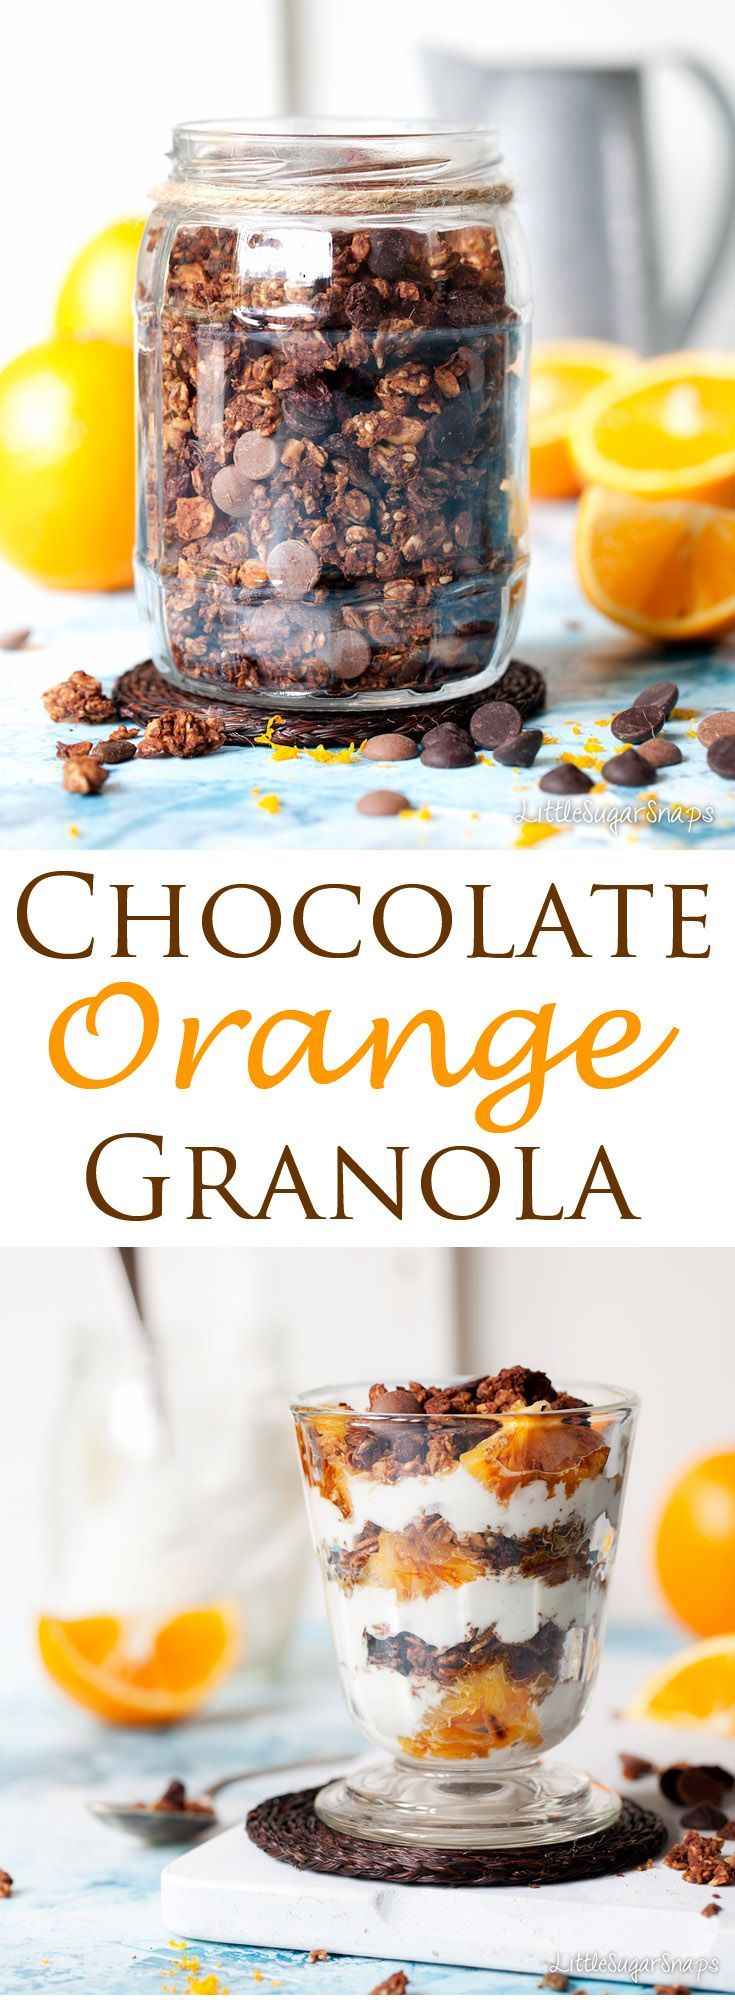 Chocolate Orange Granola is a breakfast take on the much loved chocolate-orange formula. Enjoy it with ice cold milk or pile it into a glass between layers of creamy yoghurt and fresh, charred oranges for a stylish breakfast worth getting out of bed for.